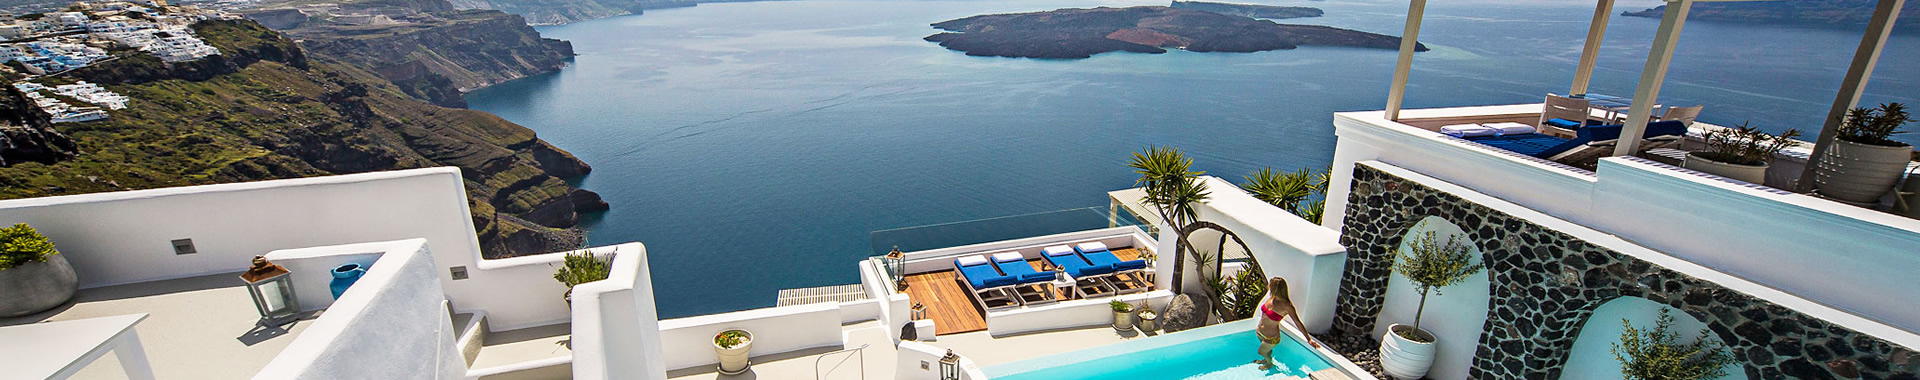 Akrotiri or Kamari Hotels in Santorini island, Greece